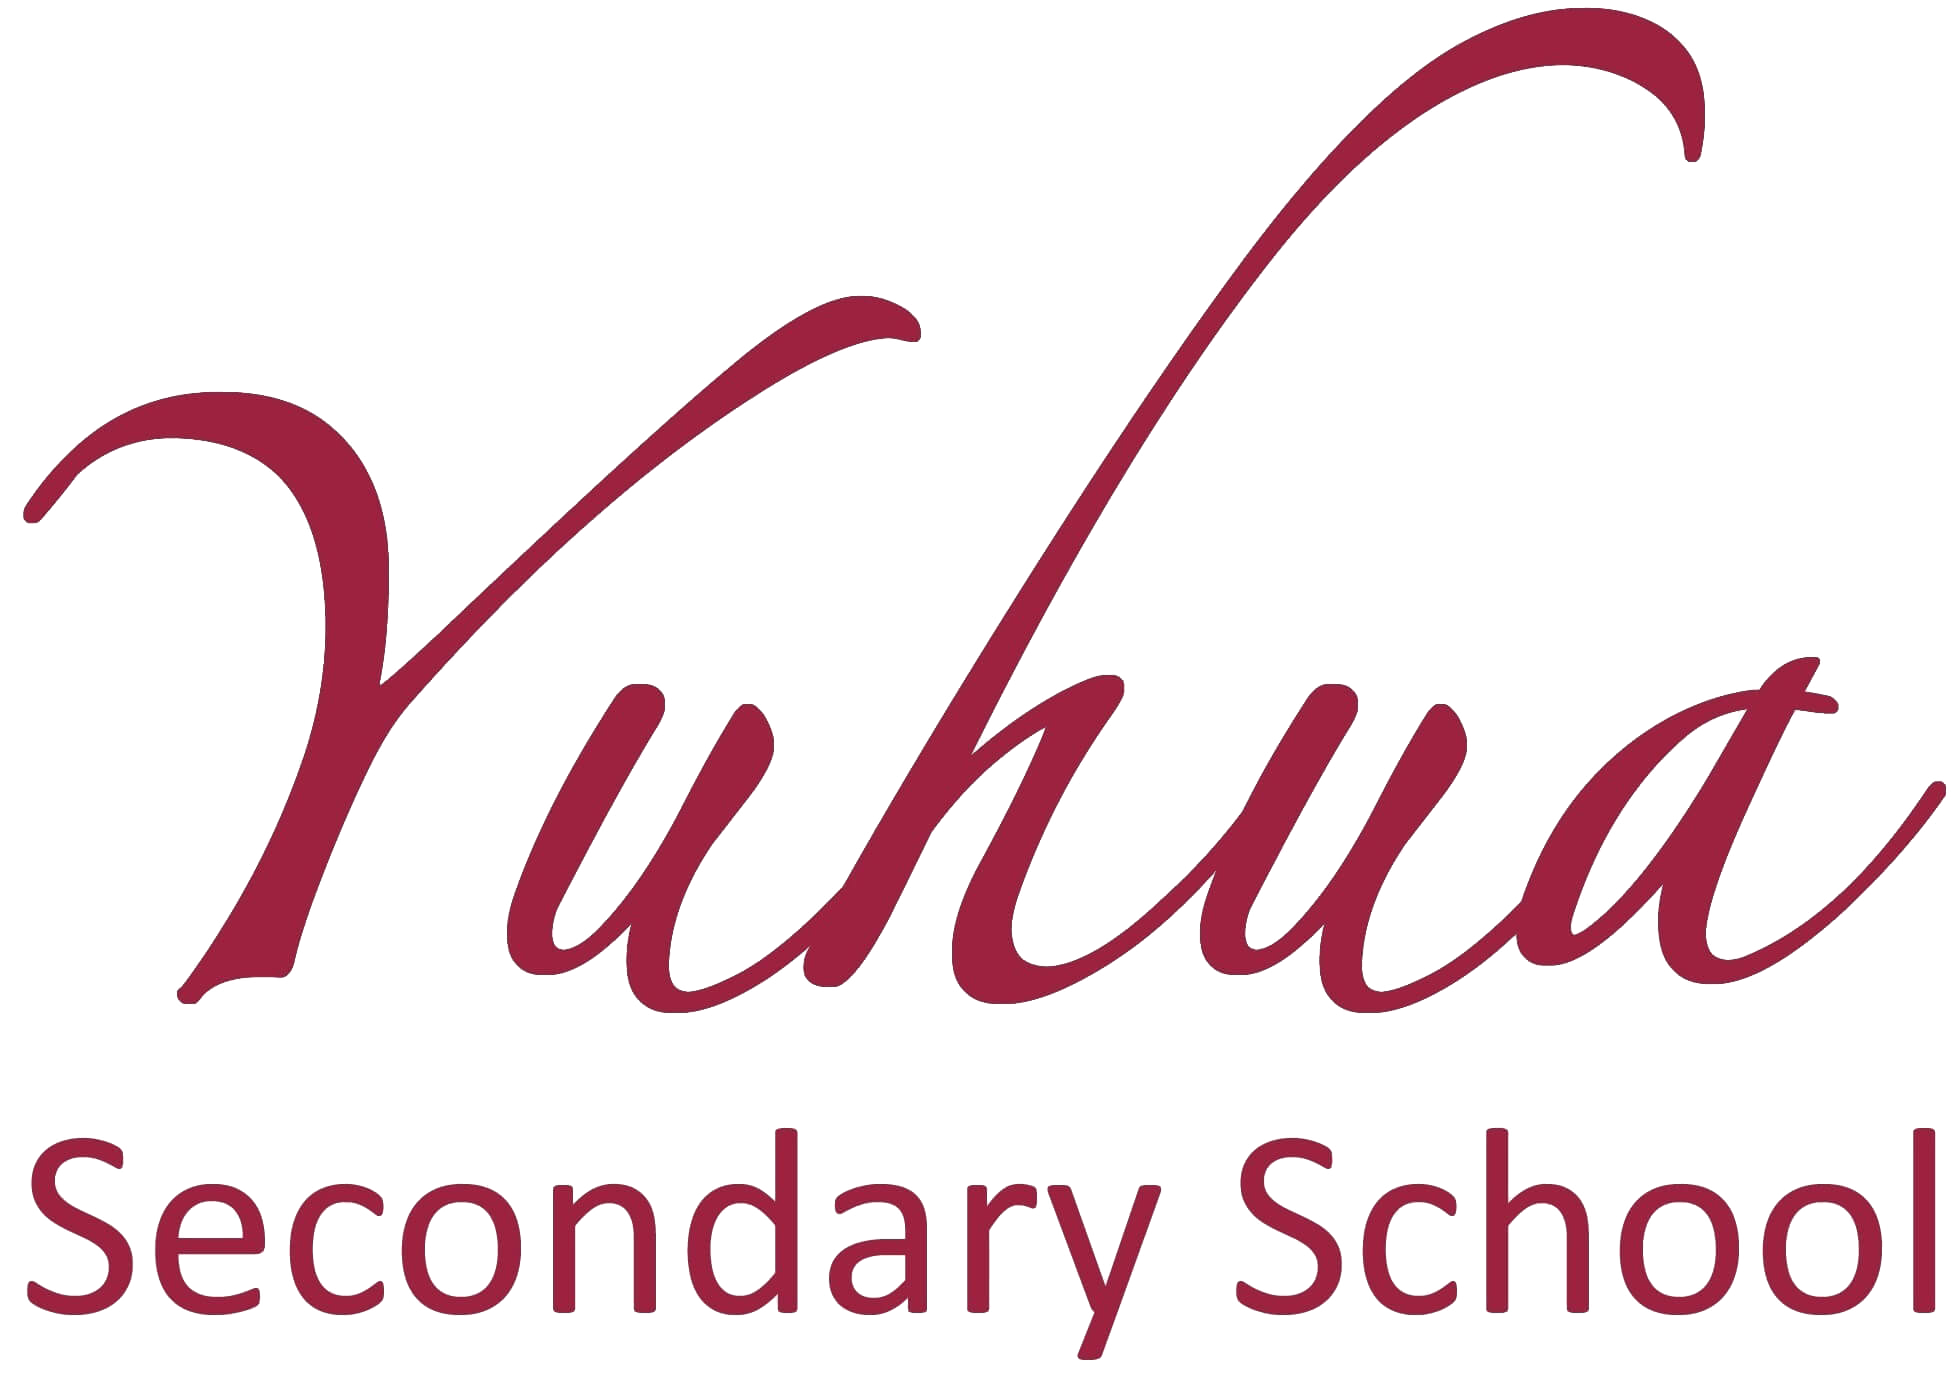 Yuhua Secondary School